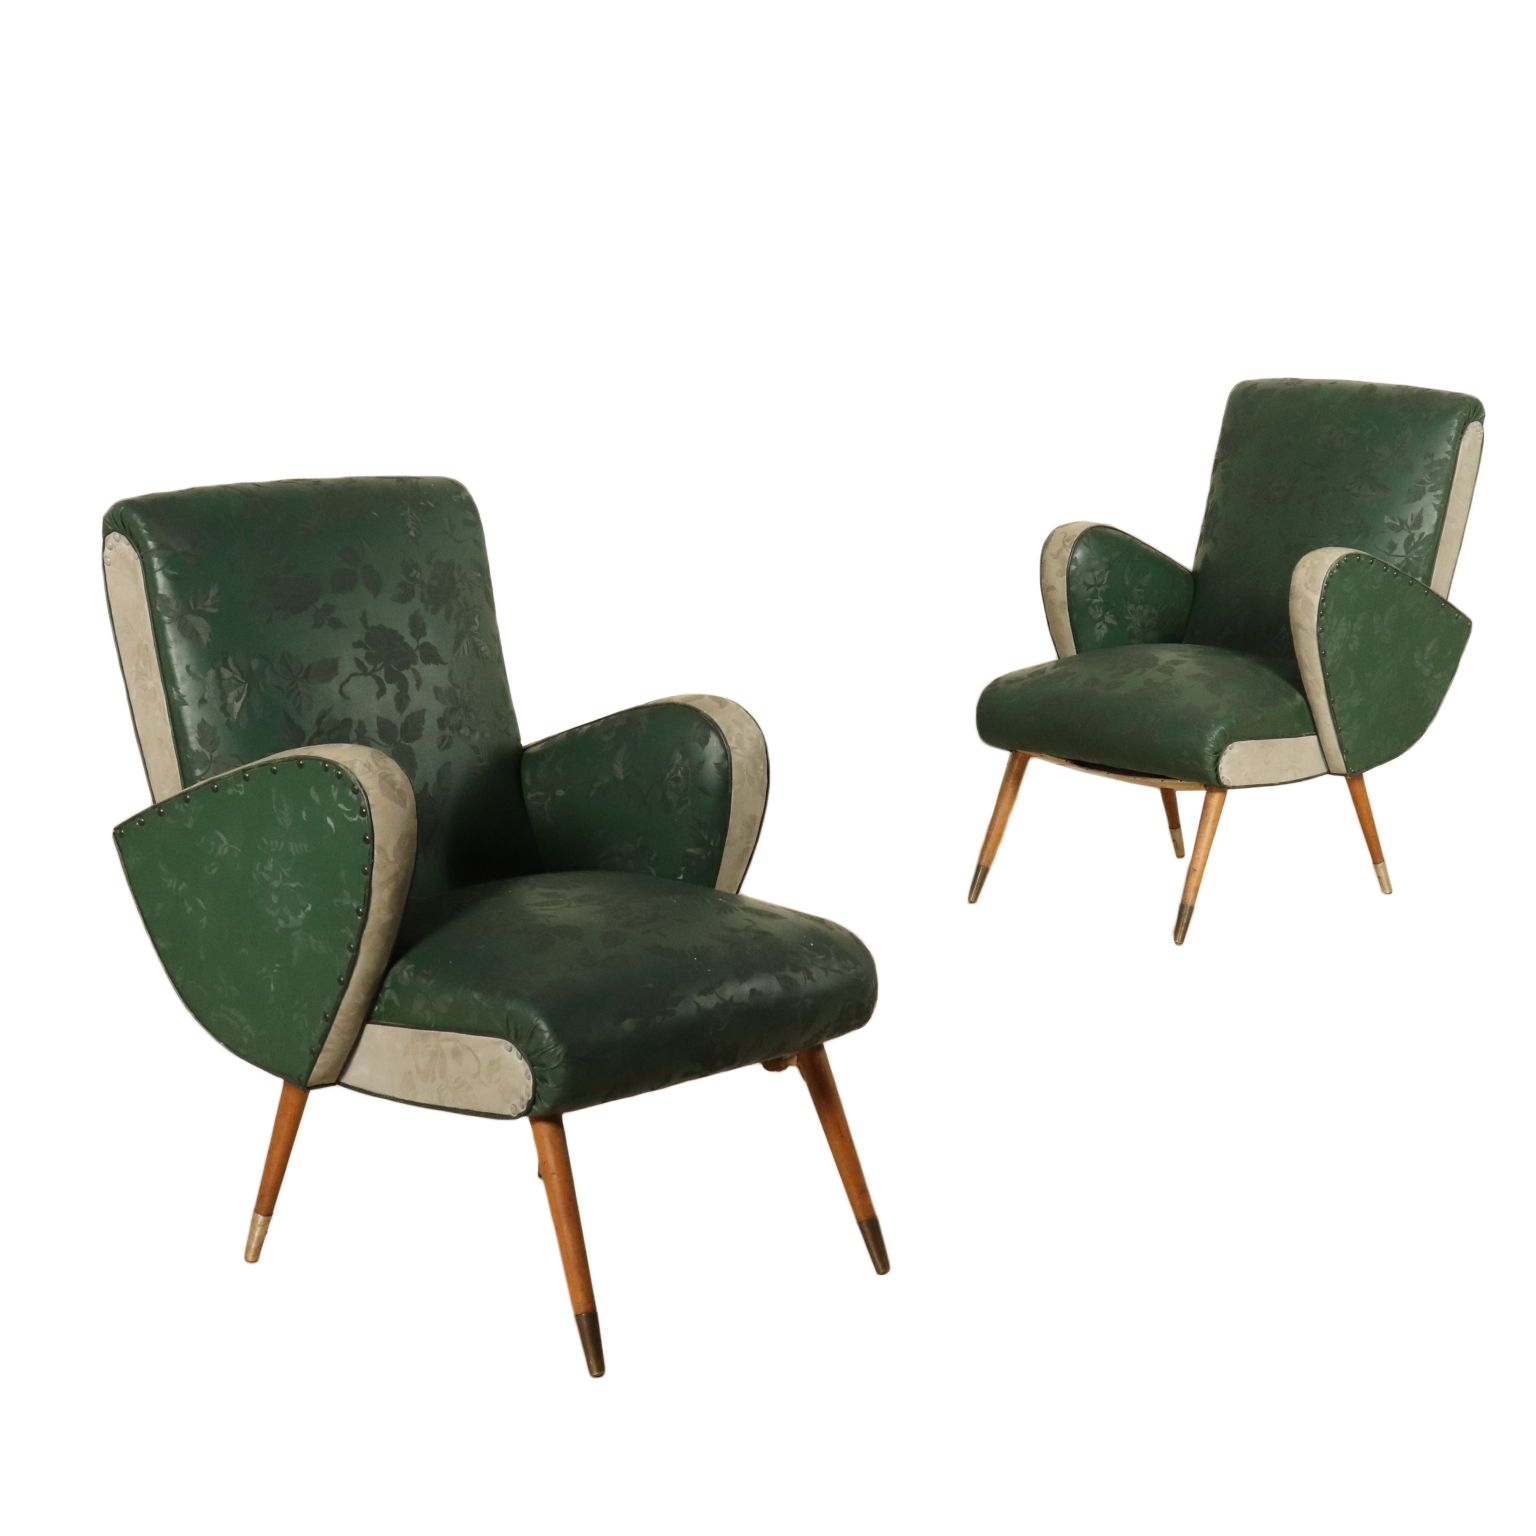 Pair Of Armchairs Springs Padding Skai Brass Vintage Italy 1950s Armchair Furniture Armchair Design